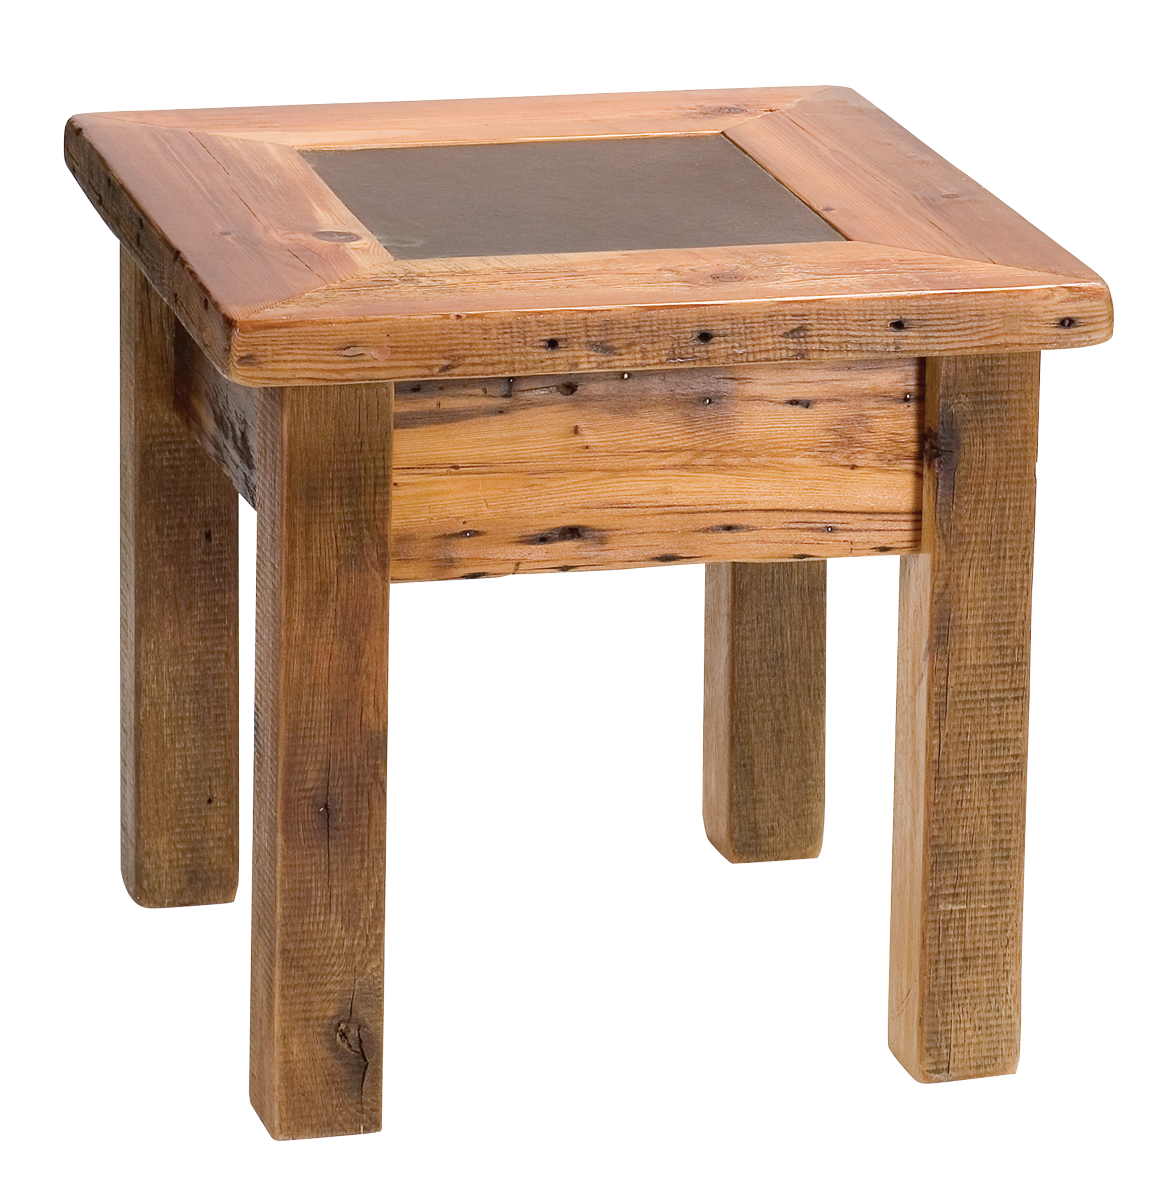 tree stump seats probably super real rustic wood end tables idea sierra table furniture mall timber creek sierraendtable frosted glass mirrored nightstands small outside and